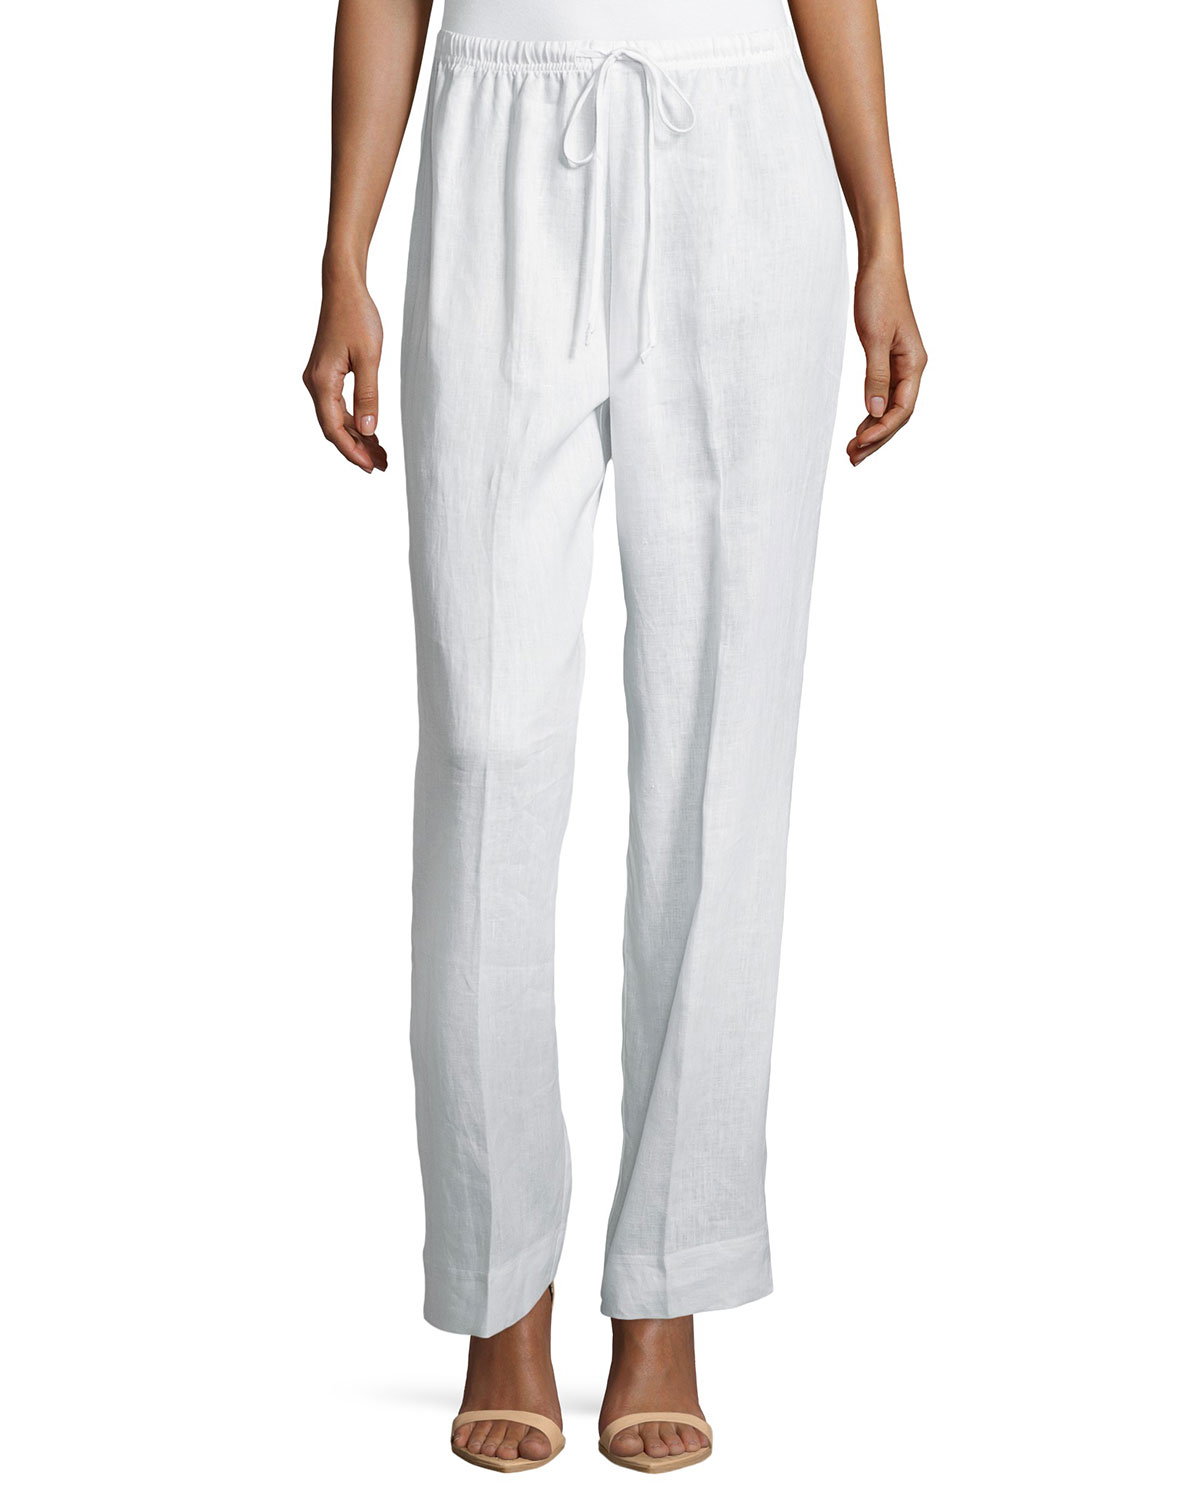 Neiman marcus Wide-leg Drawstring Linen Pants in White | Lyst